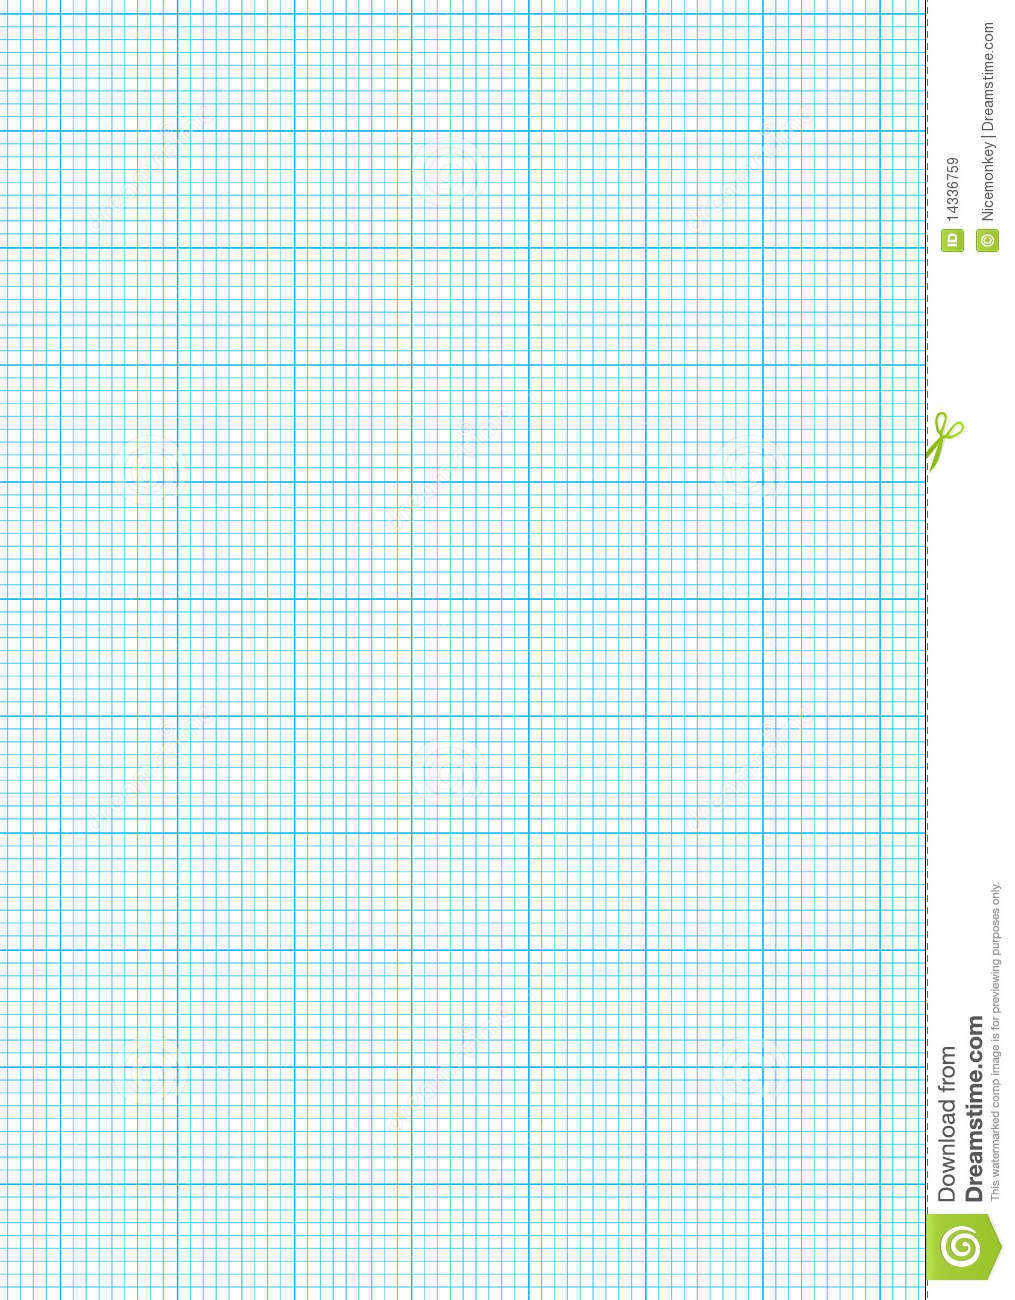 Graph Paper A4 Sheet Royalty Free Stock Images - Image: 14336759